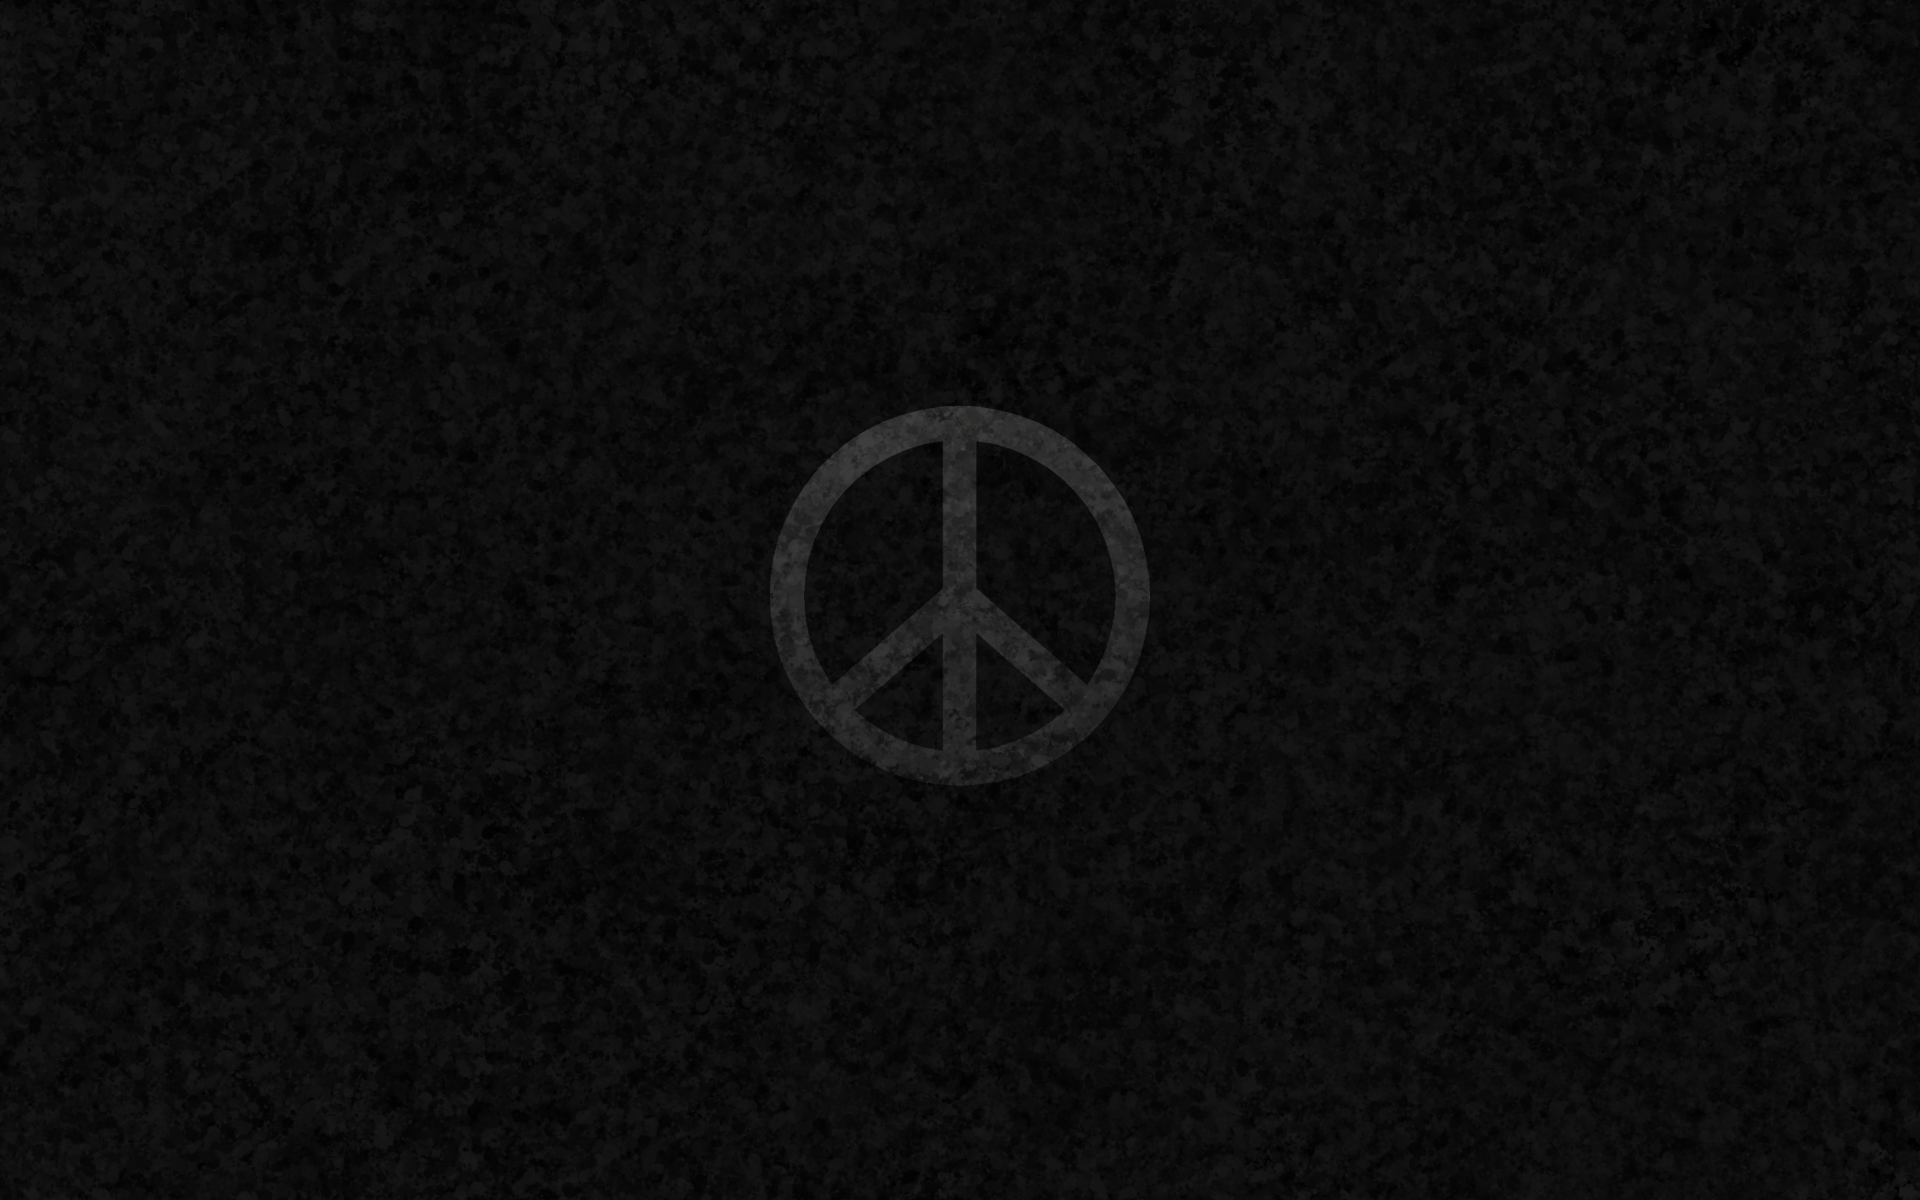 peace hd wallpapers - wallpaper cave